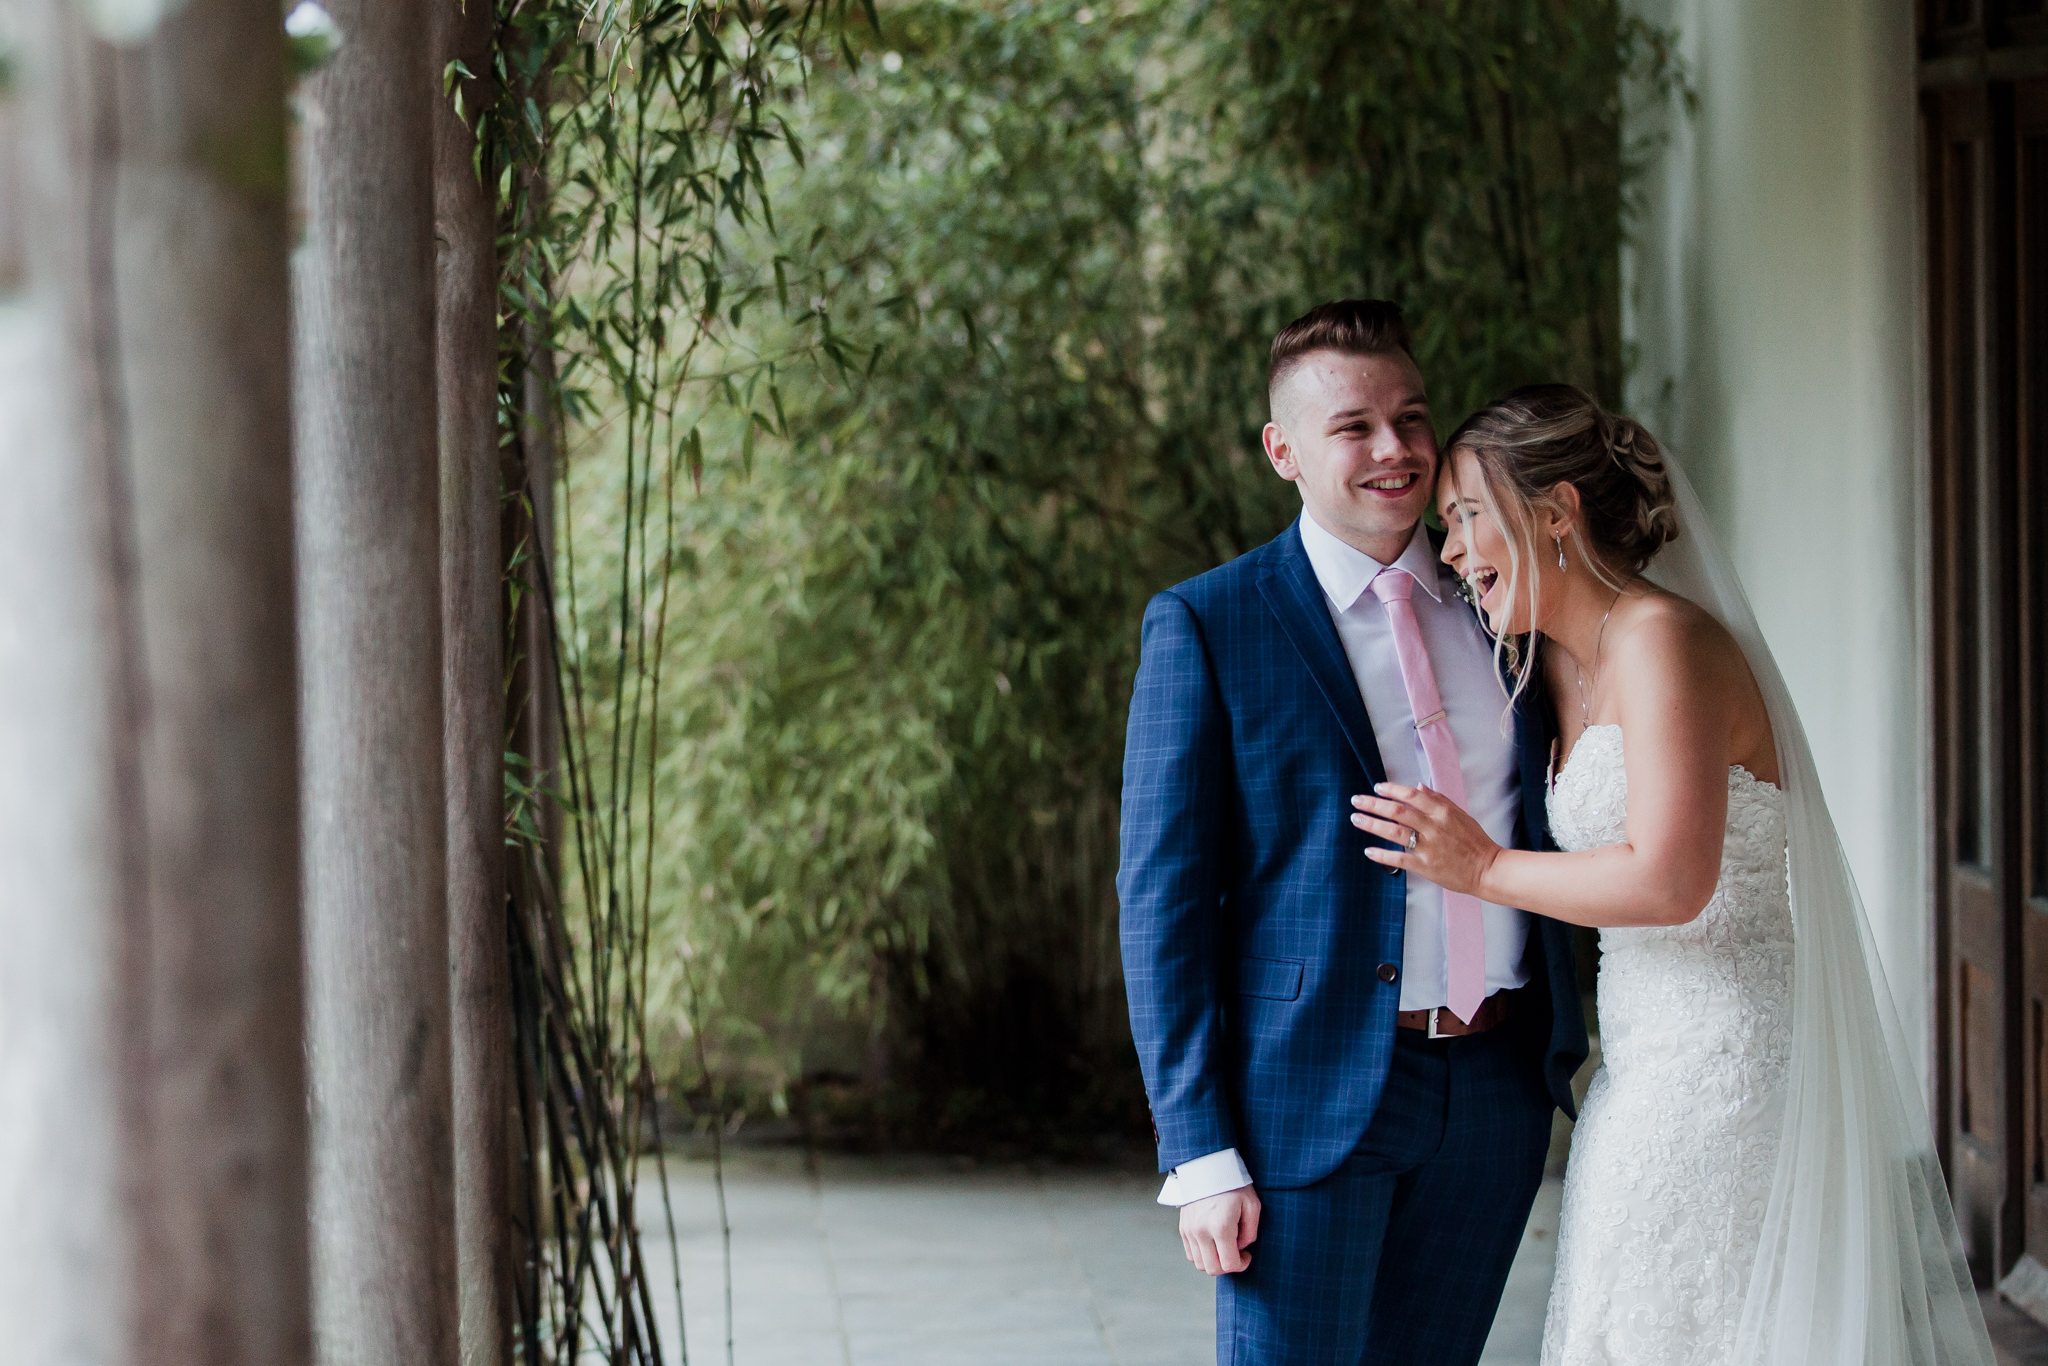 Modern wedding photography by Bristol Contemporary Photography available for hire.